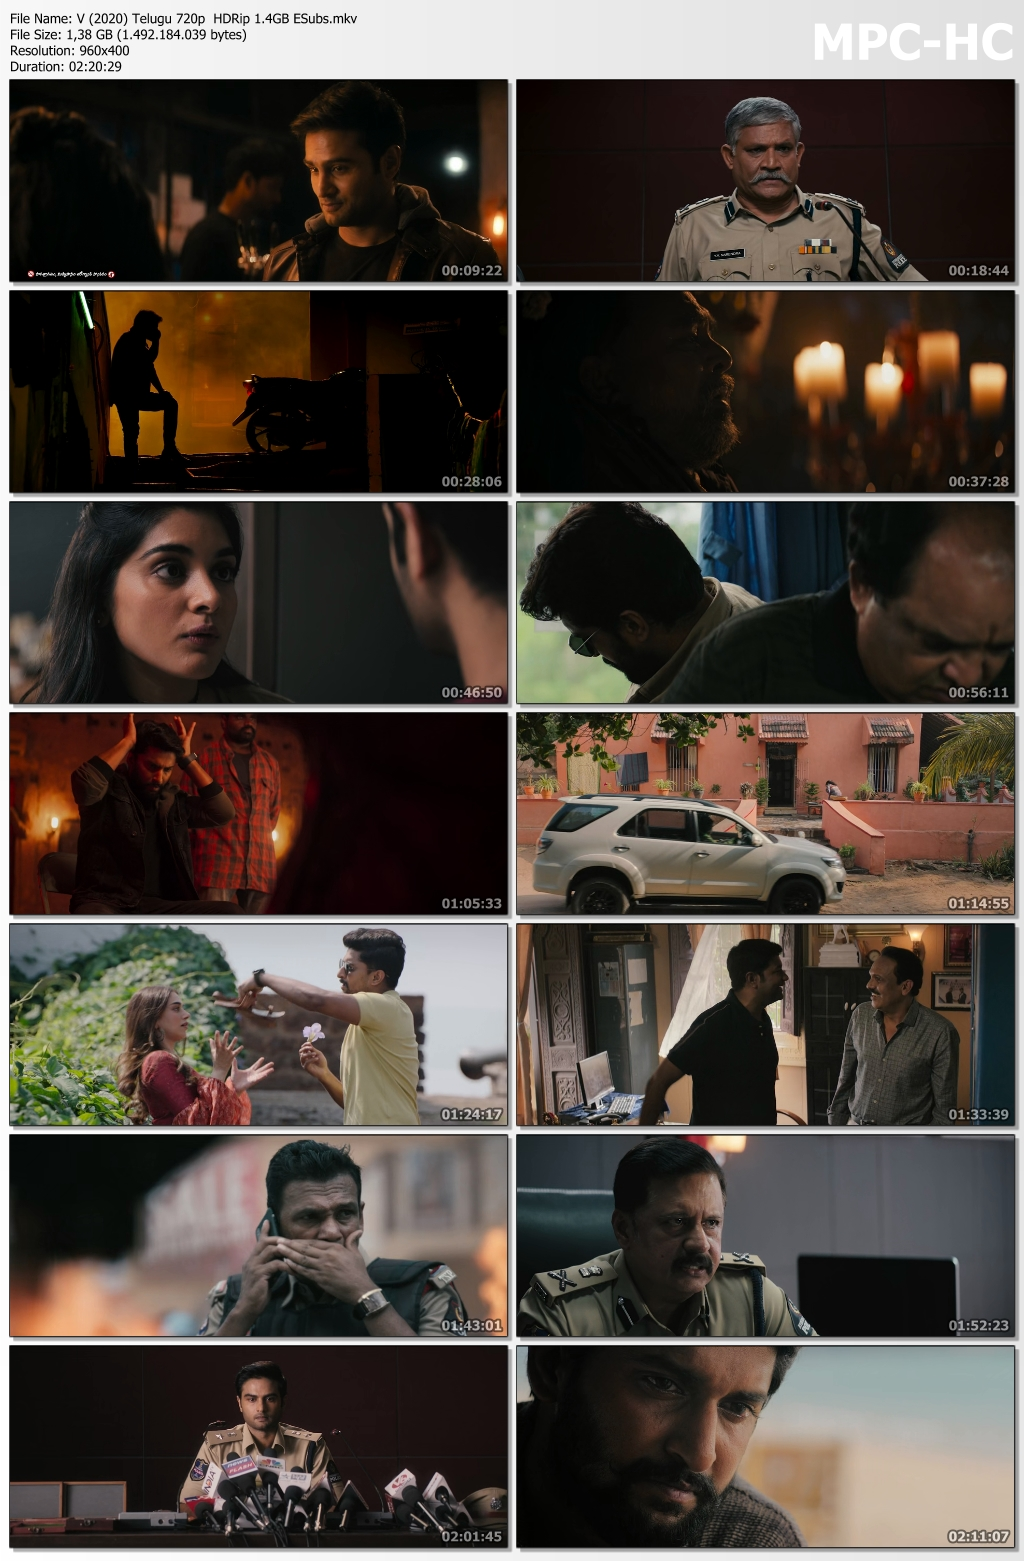 V-2020-Telugu-720p-HDRip-1-4-GB-ESubs-mkv-thumbs